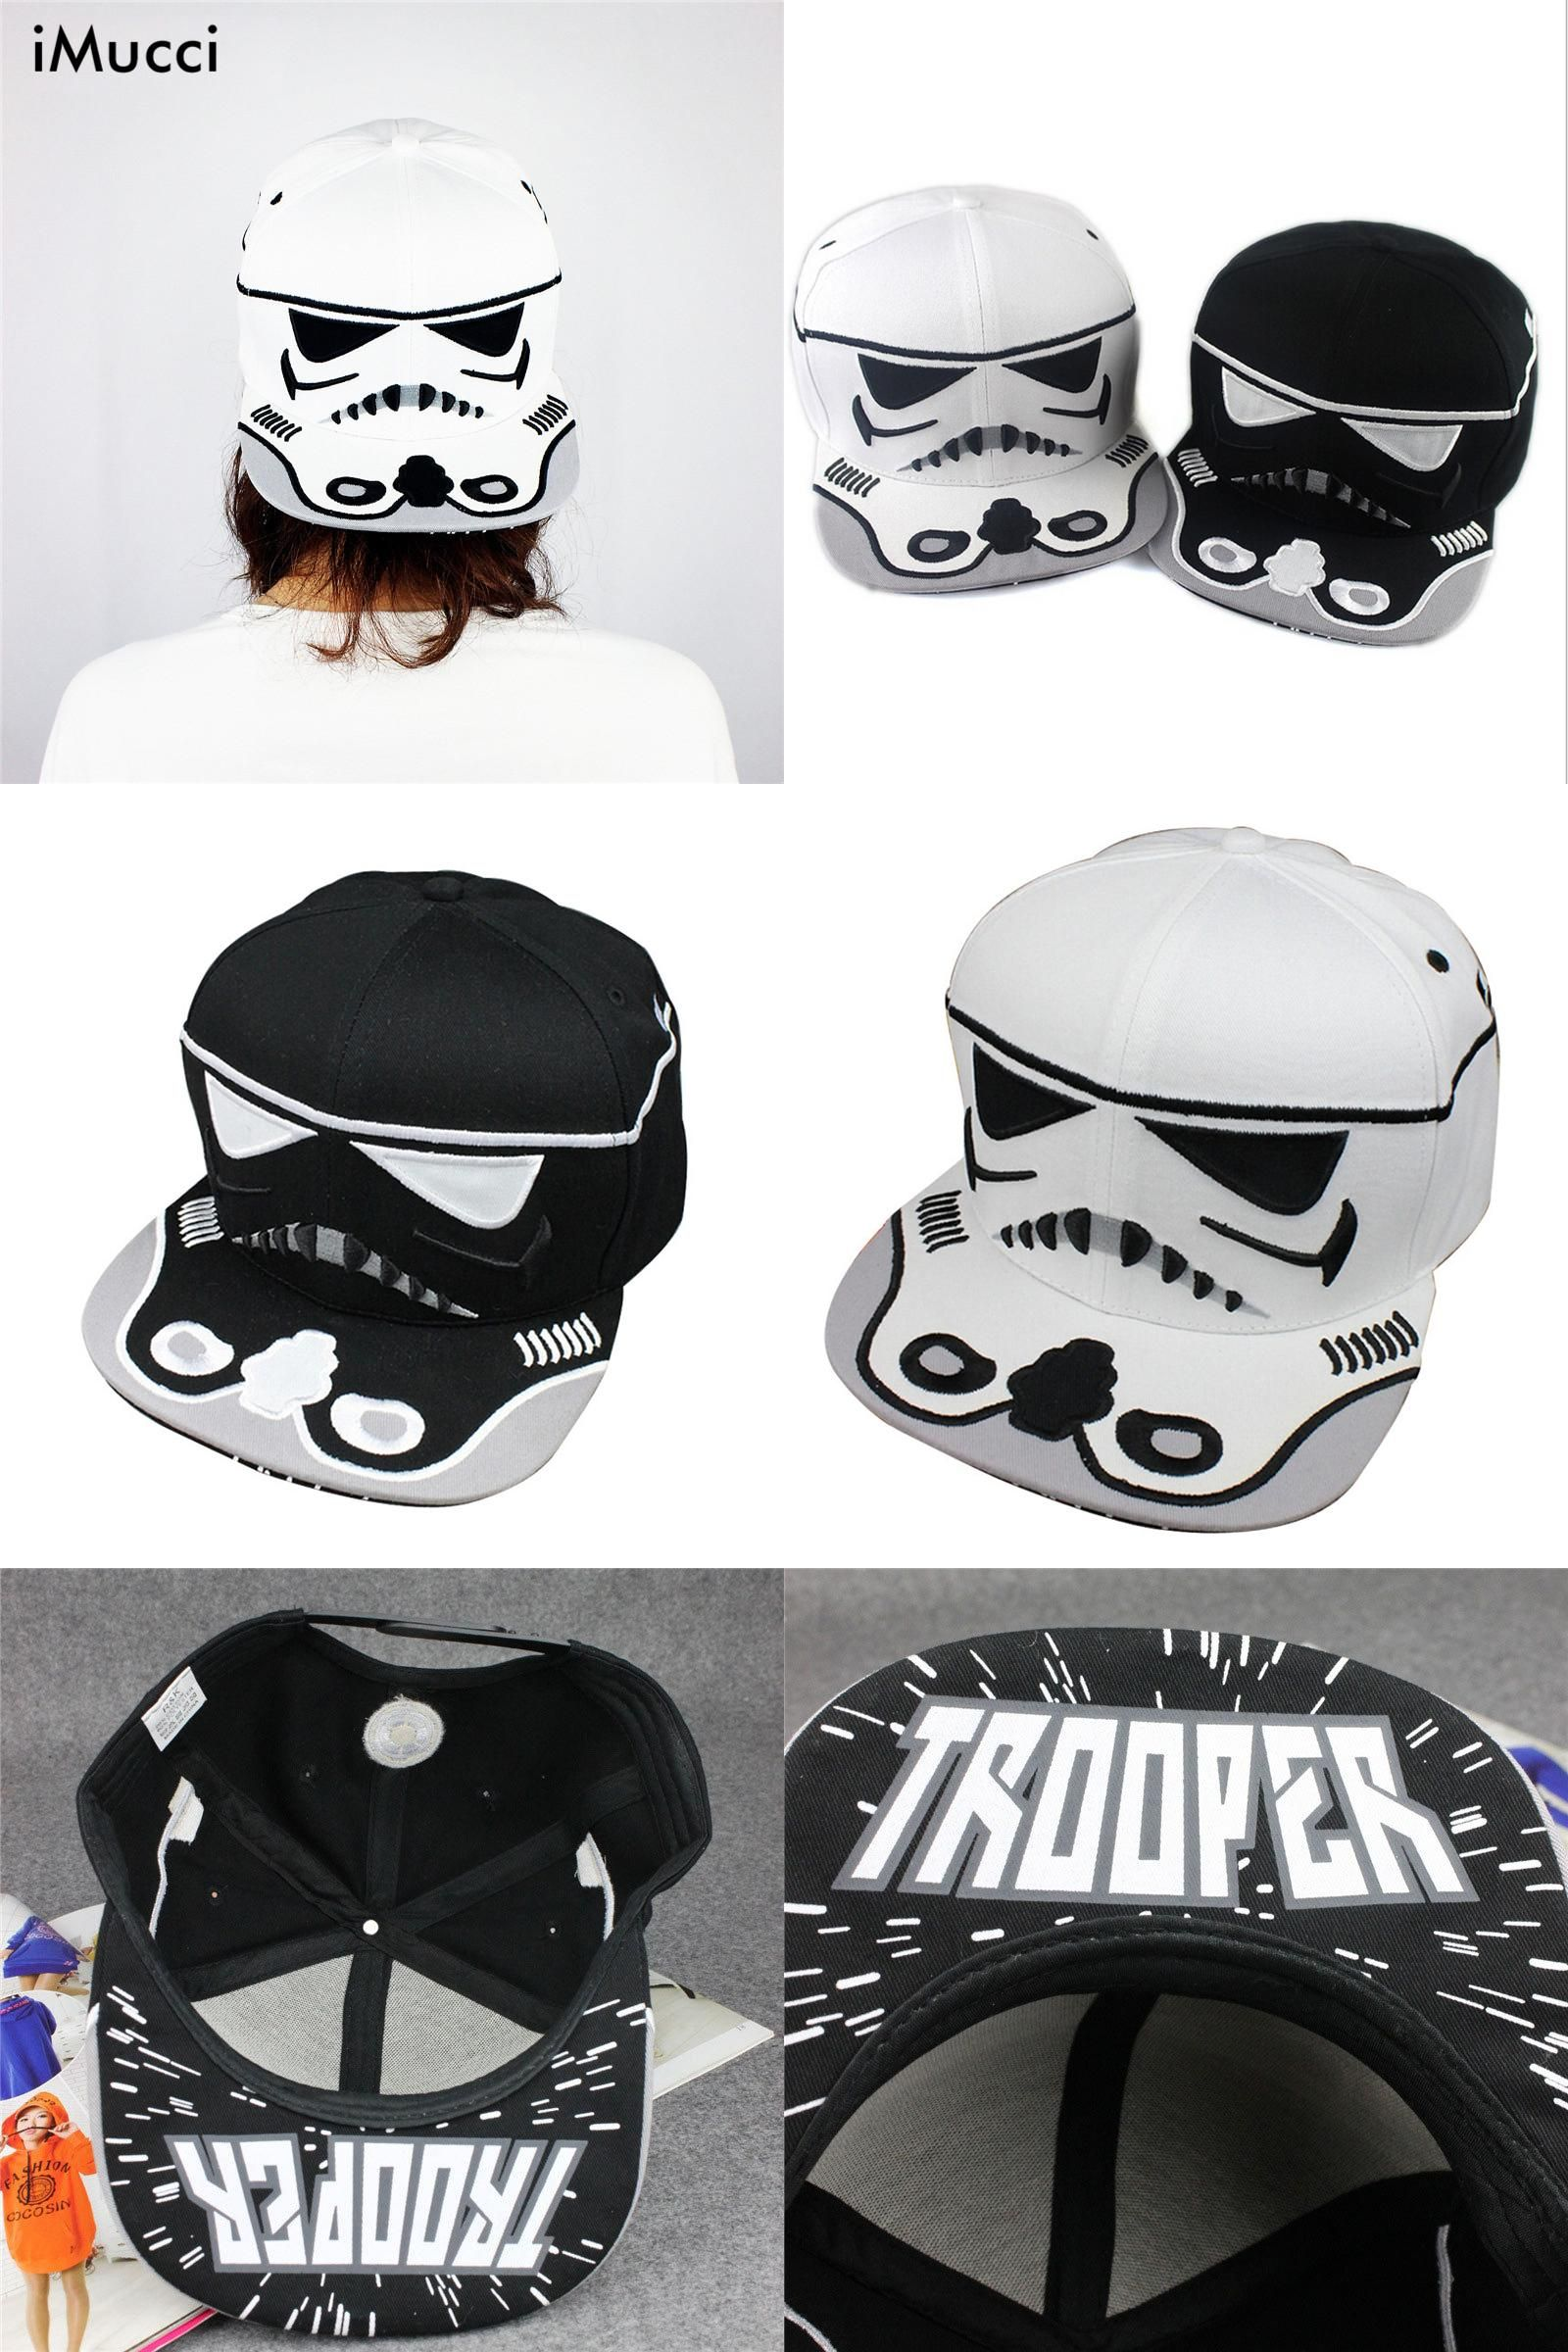 Visit to Buy  iMucci 2017 Fashion Cotton Brand Star Wars Snapback Caps  Cool Strapback be99f0e77be9